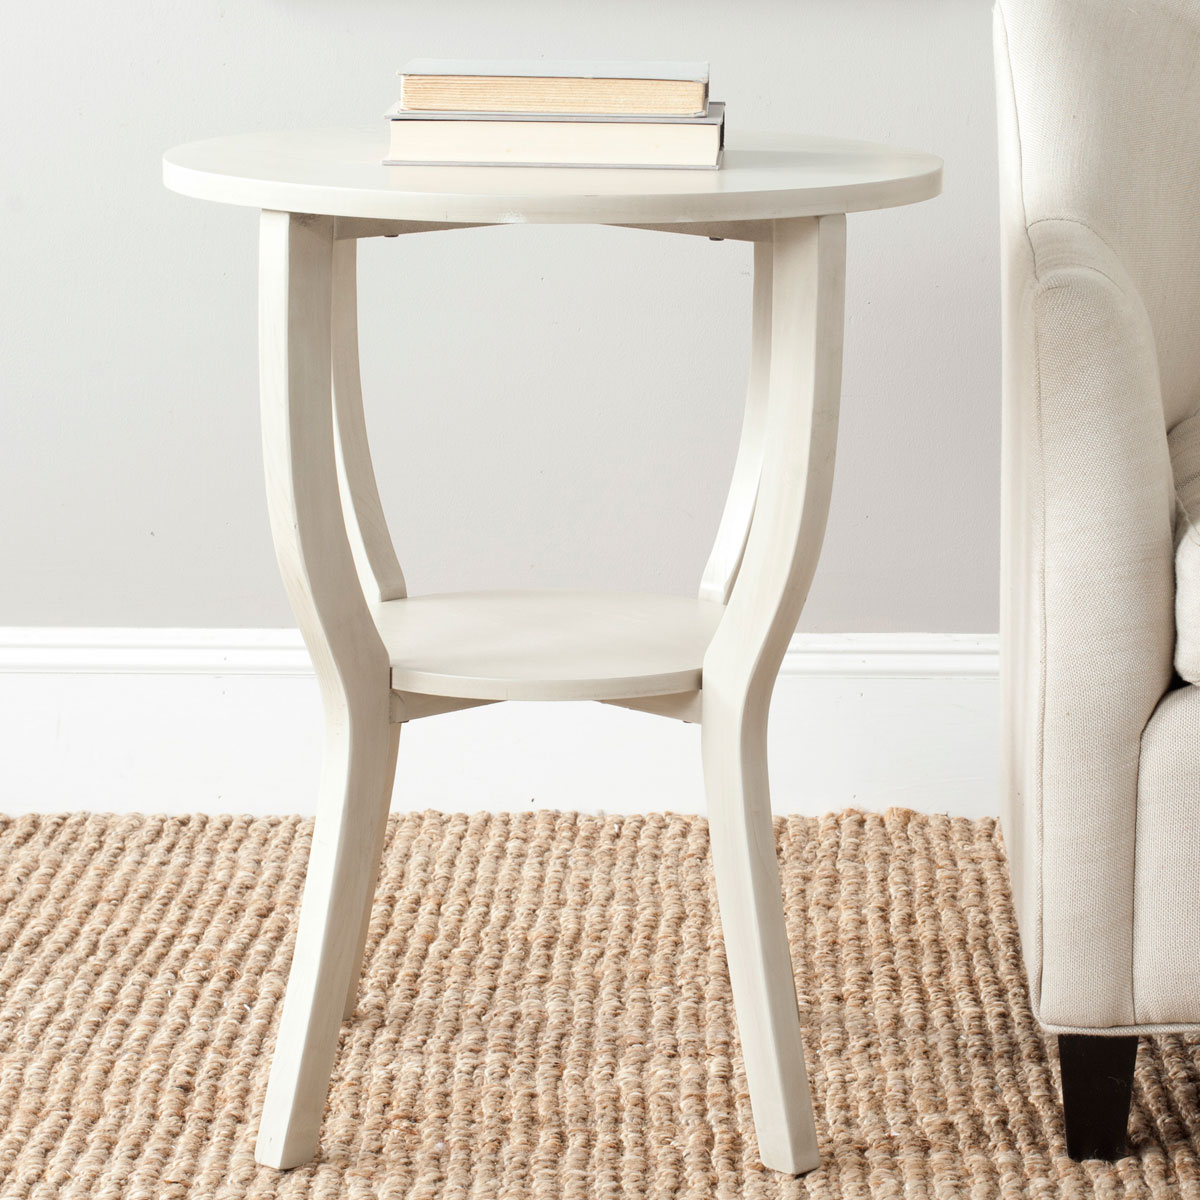 accent tables furniture safavieh room round pedestal table crafted elm wood with whitewash finish the top paired hour glass legs and useful storage shelf modern white coffee